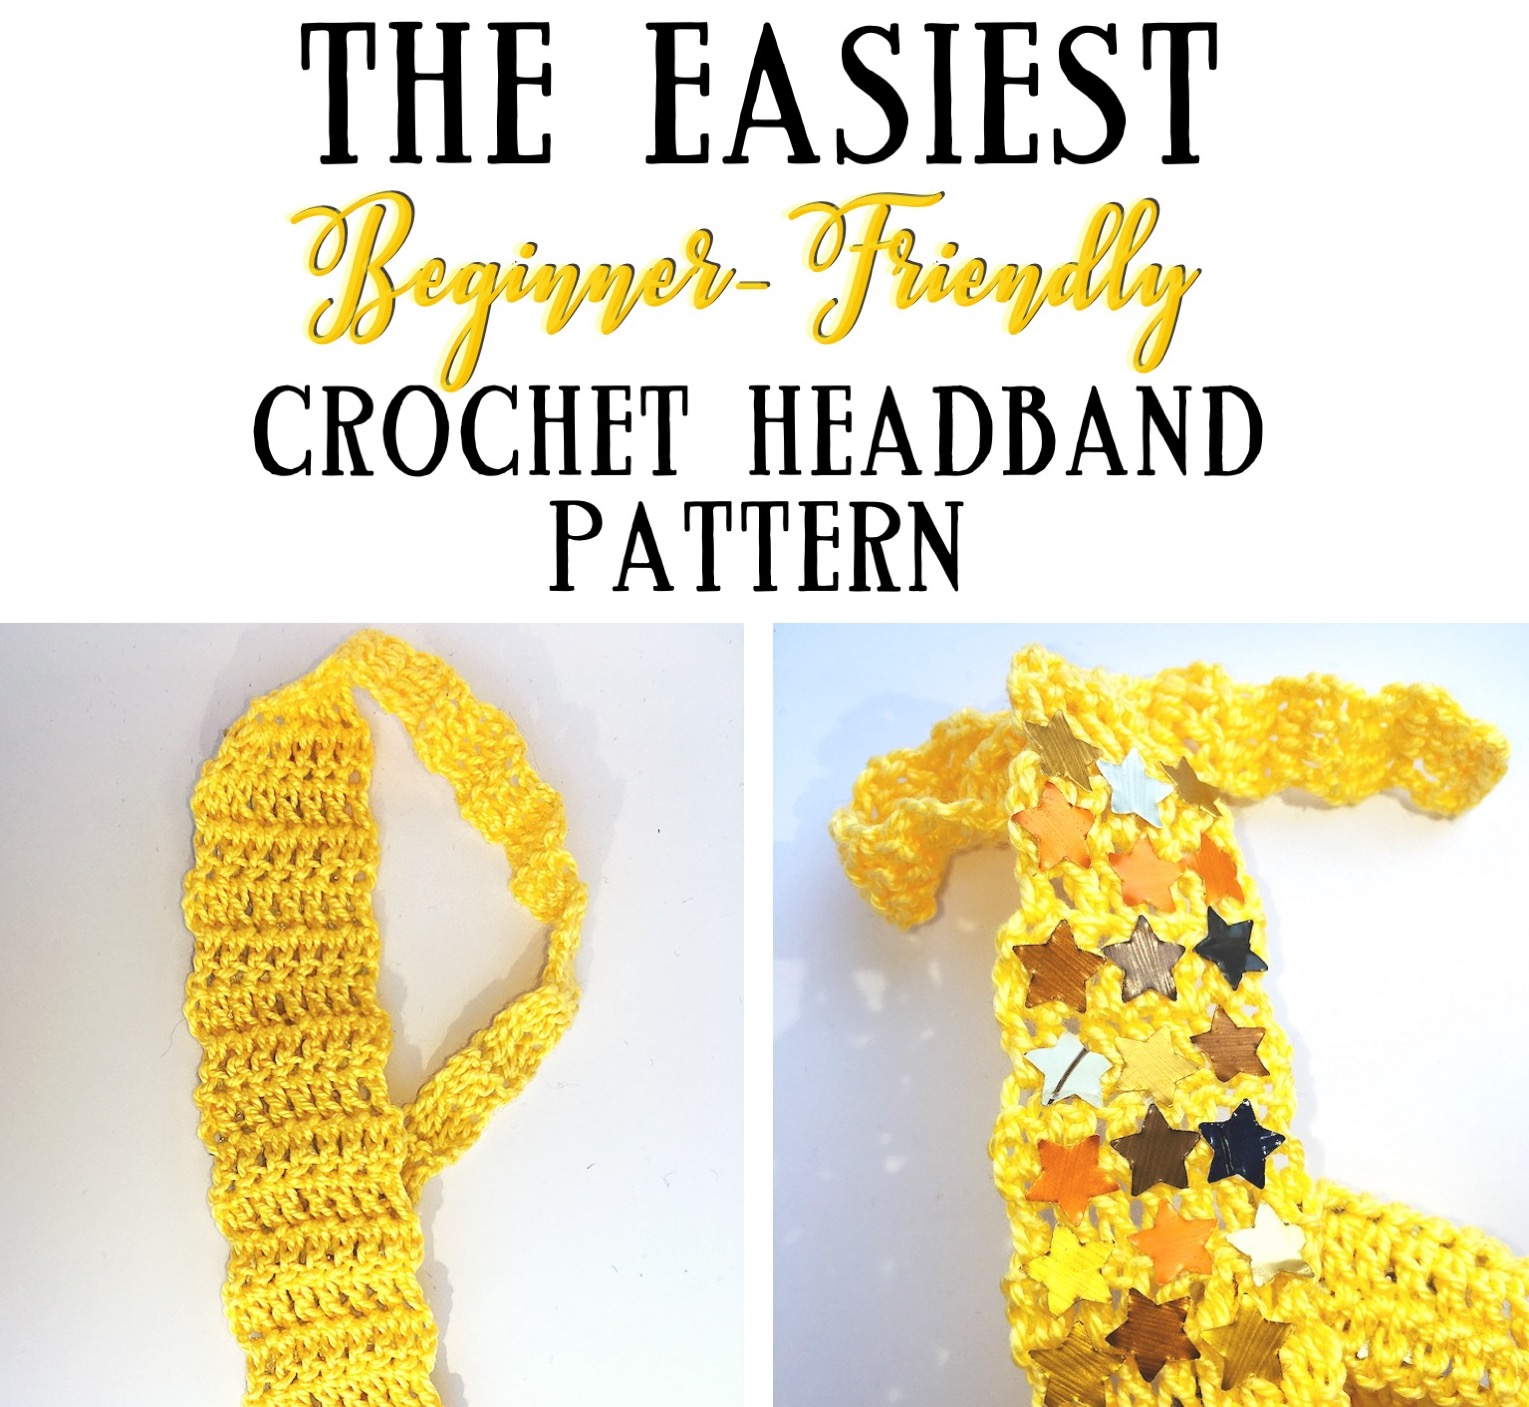 My first easy blingy crochet headband pattern